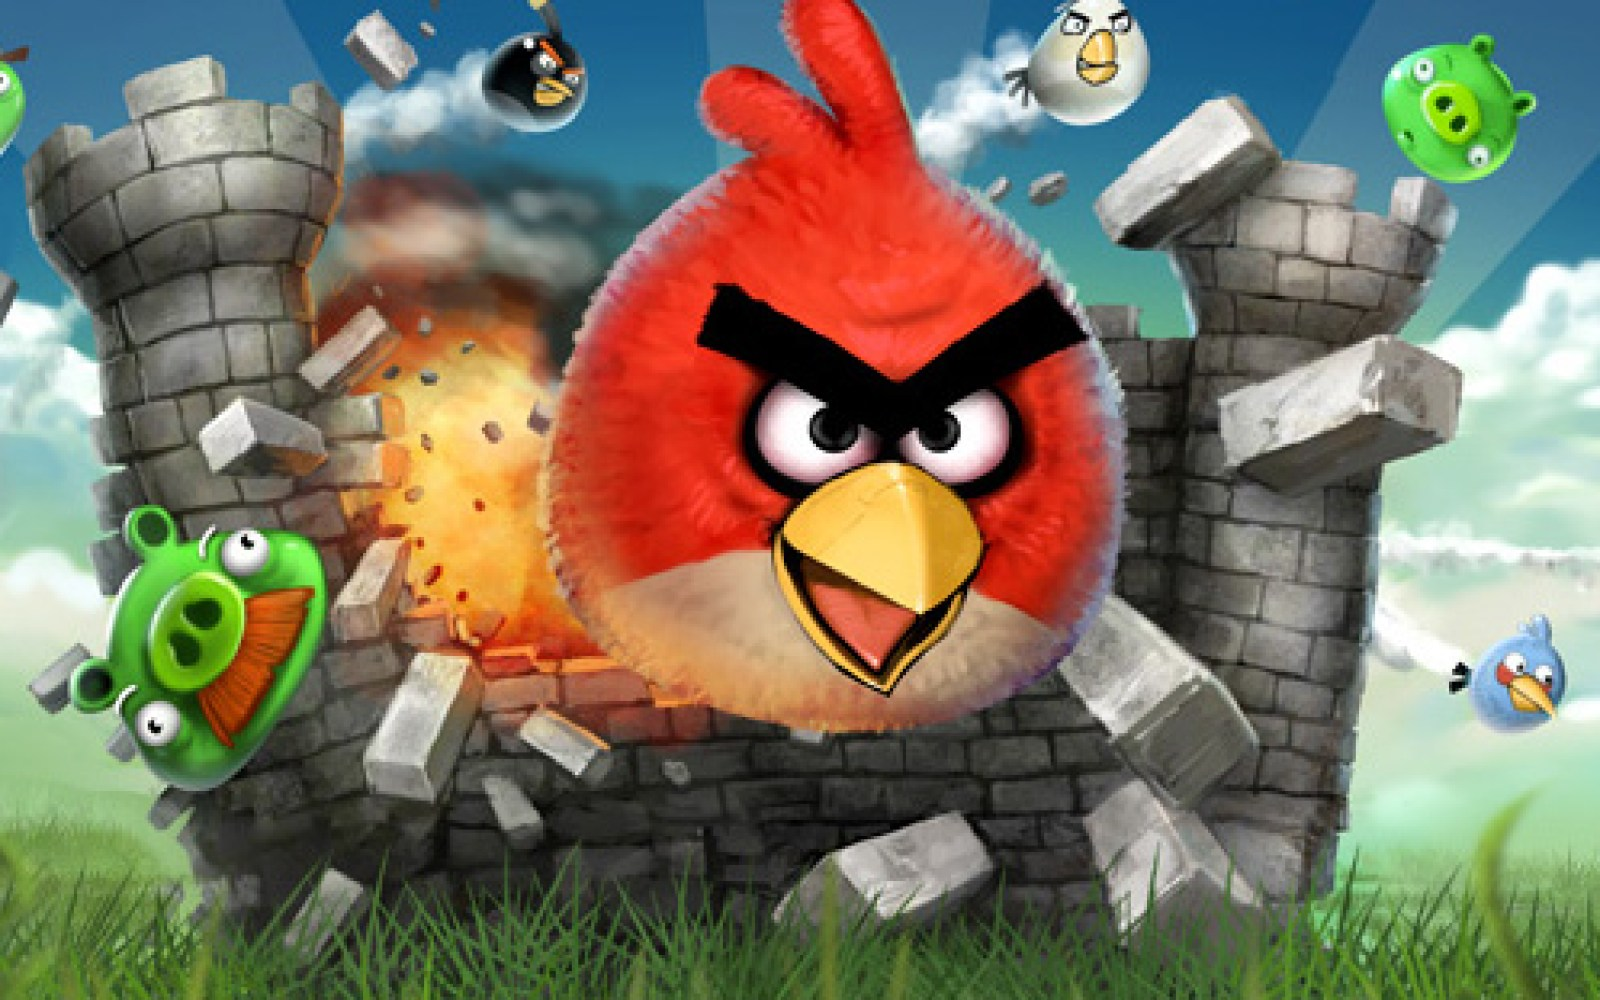 fan backlash over adverts injected in angry birds hd | 9to5mac